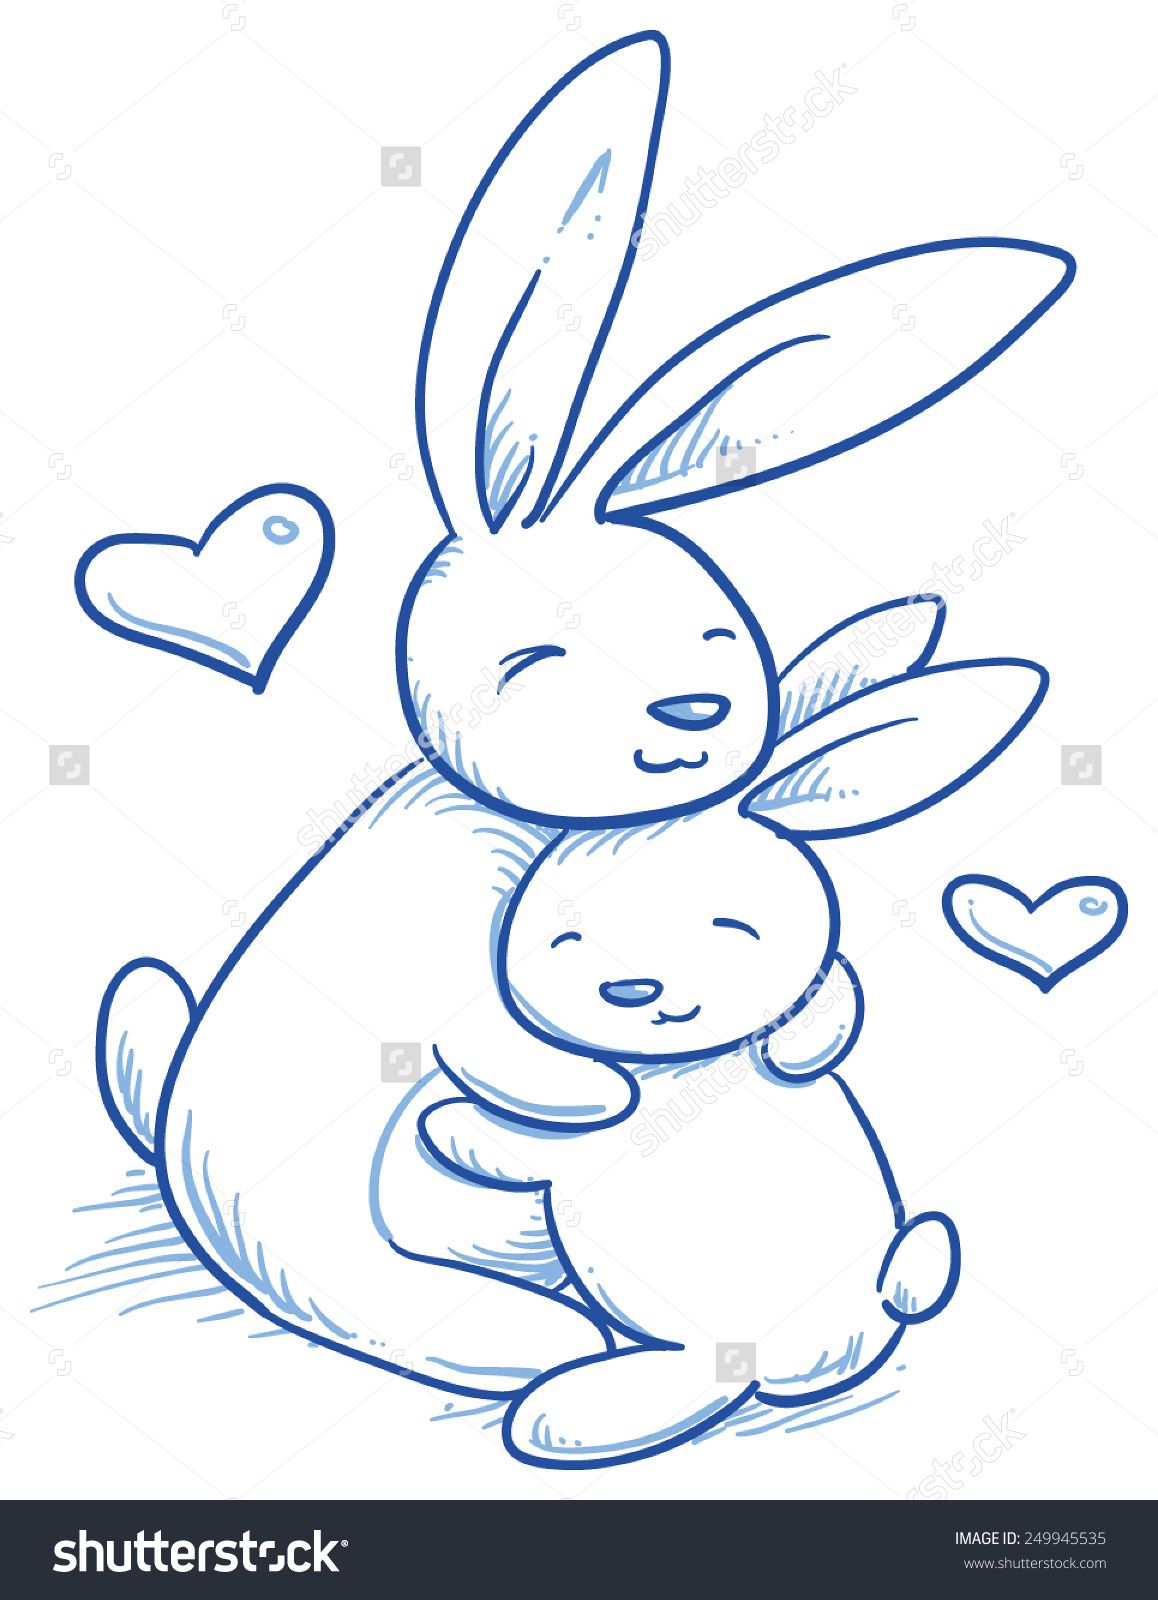 Cute Baby Bunny And Adult Cuddling, Hugging, Happy, For Easter Or ...